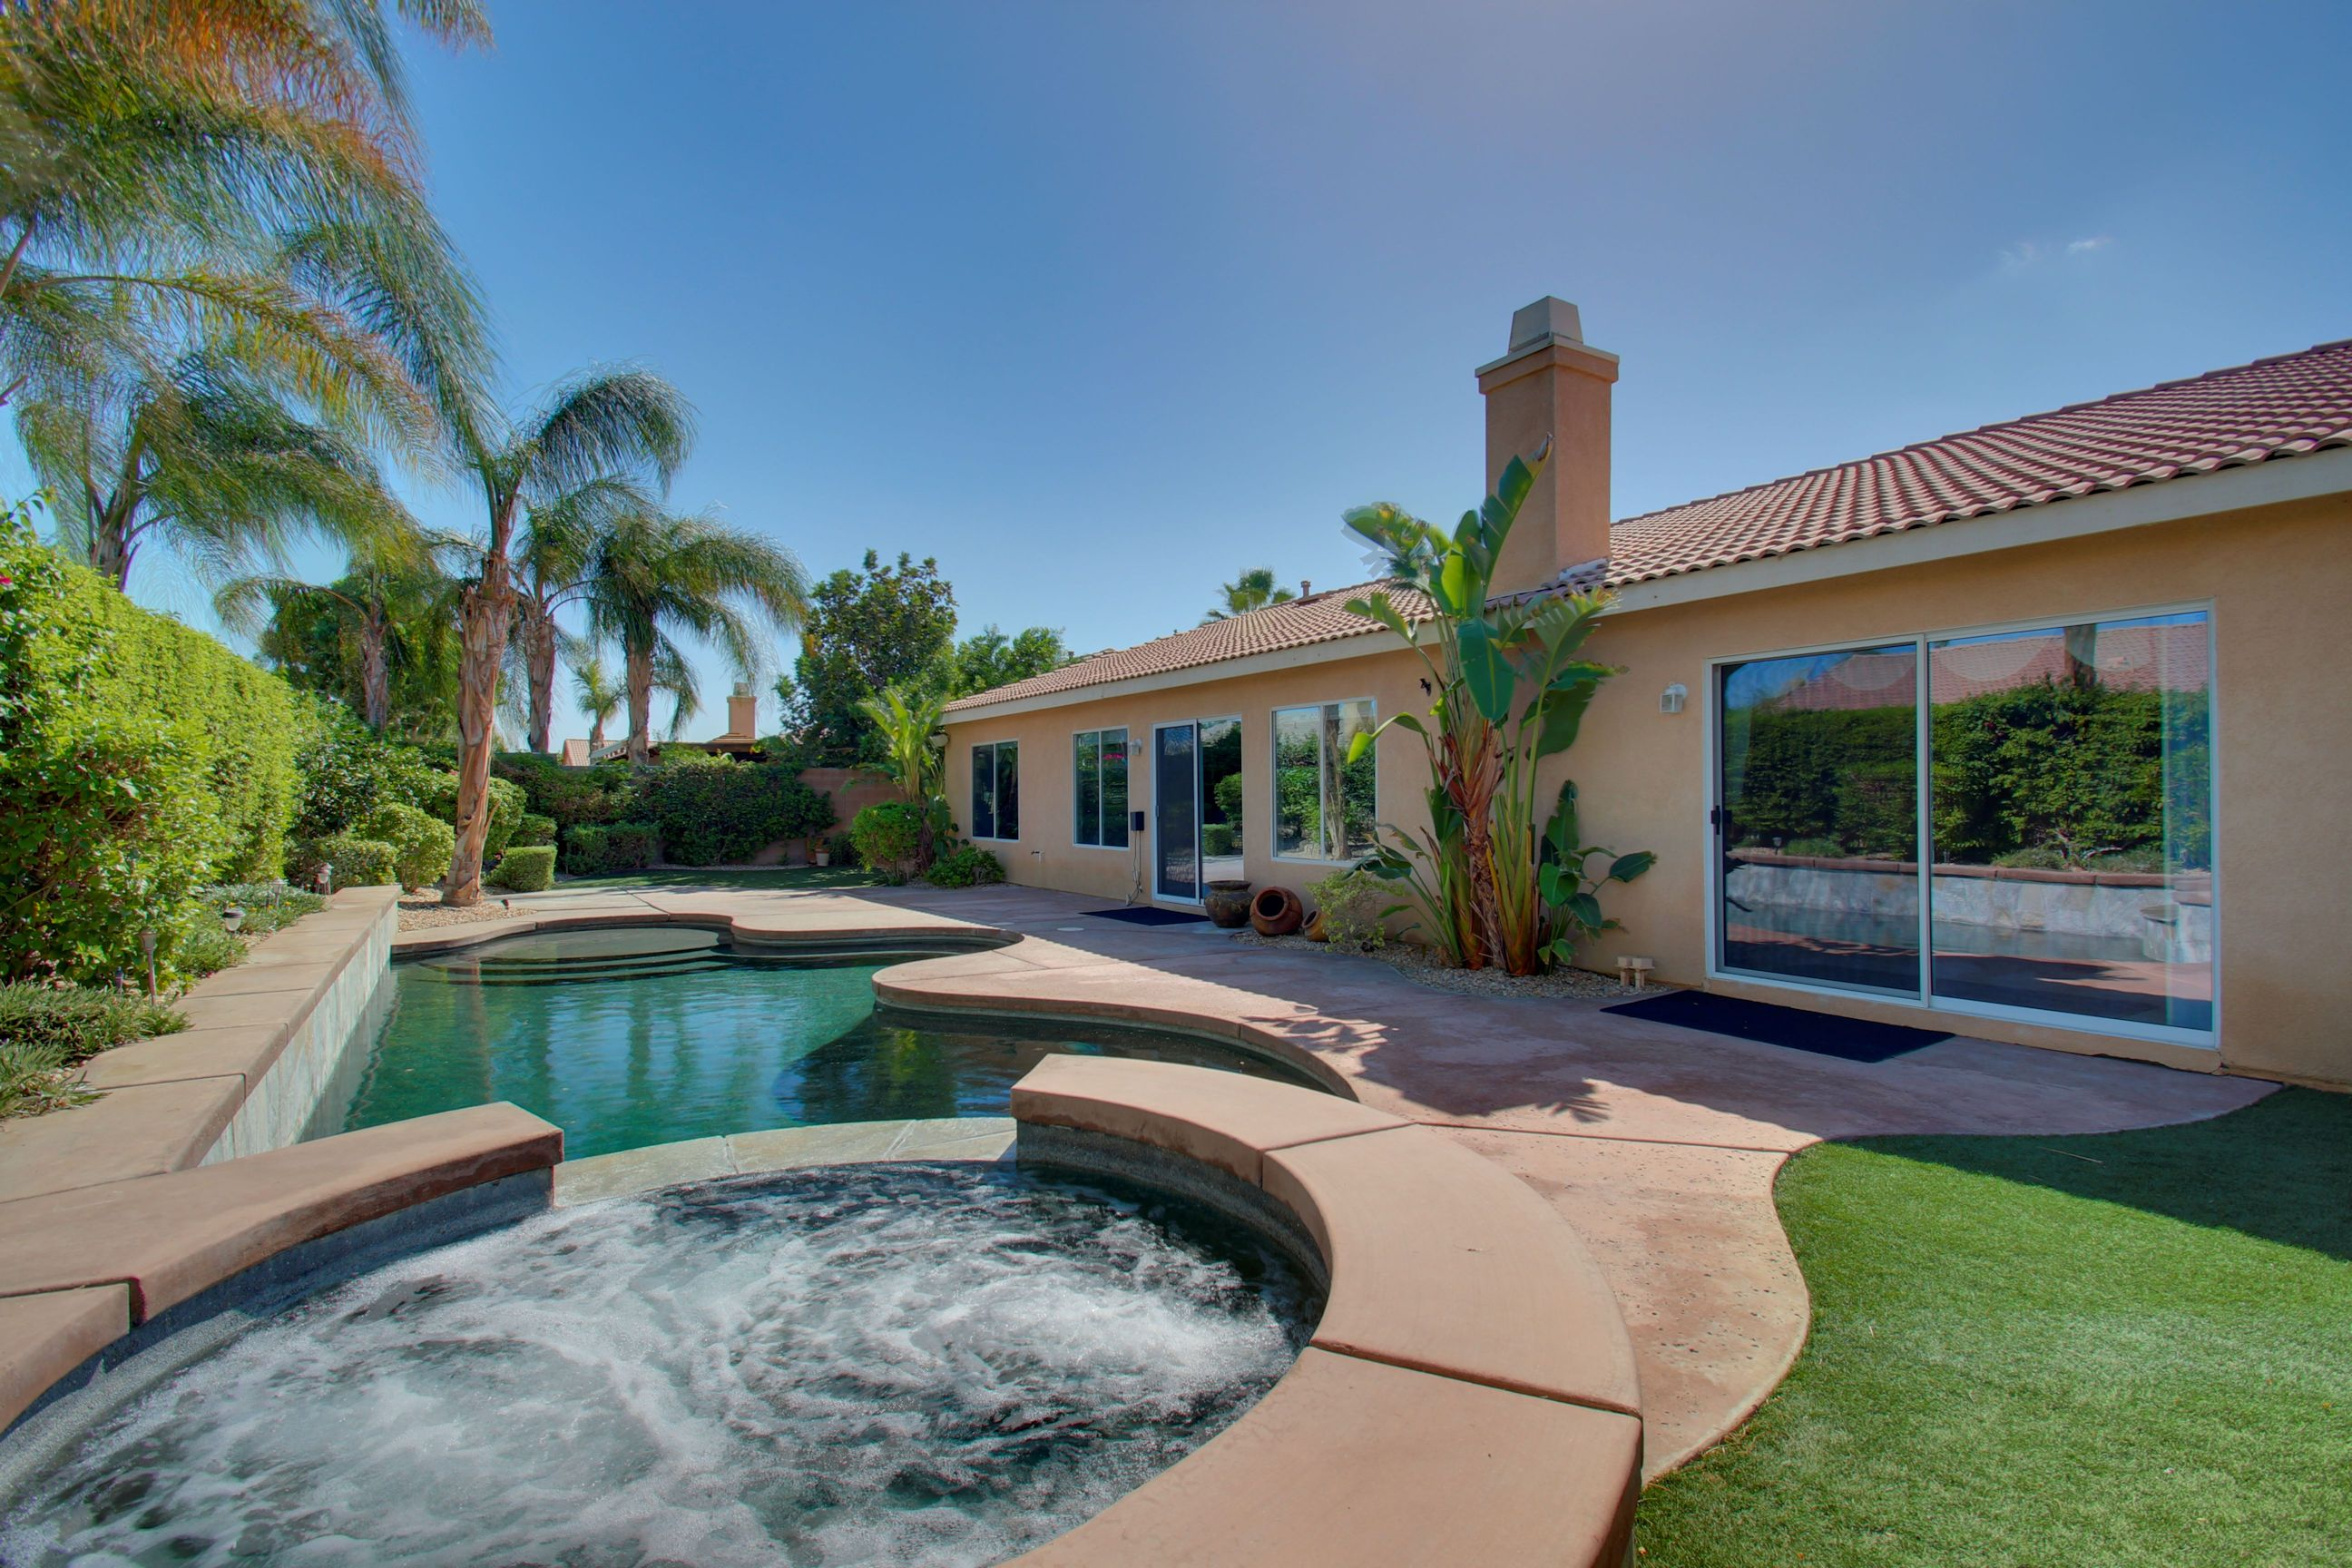 Large Indio California Home For Sale 4 Bedroom